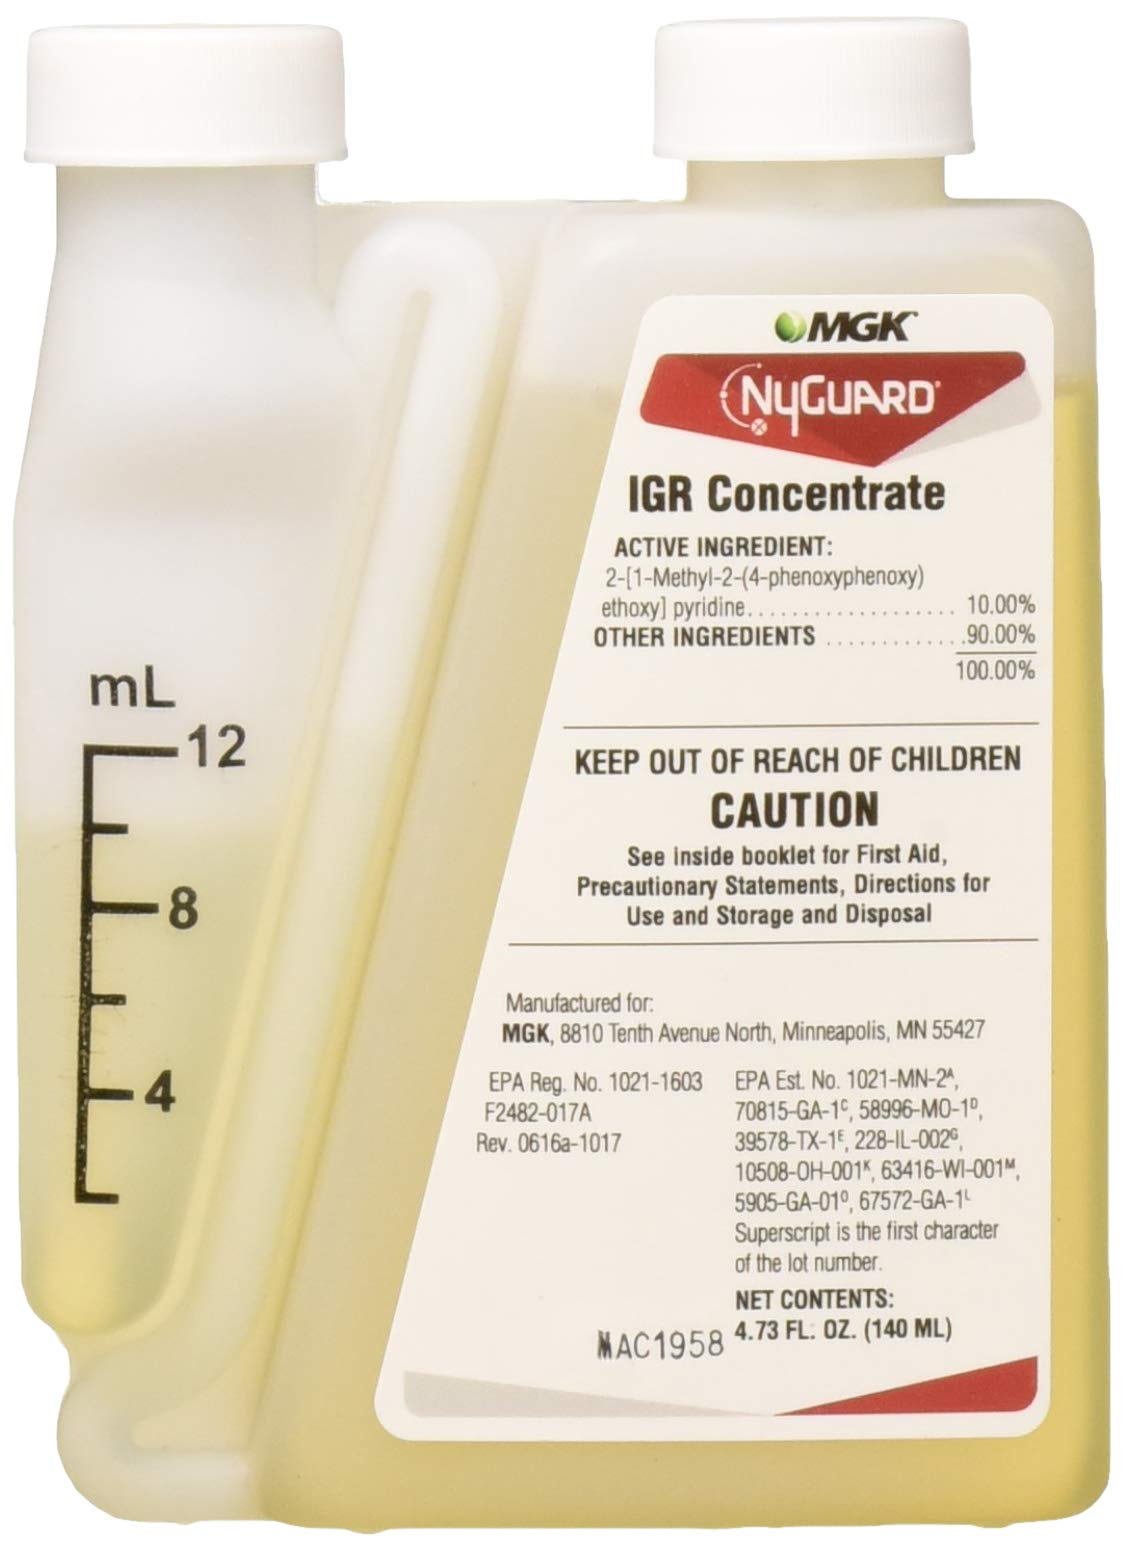 MGK 802958 NyGuard IGR Concentrate Insecticide, 4.73oz, Clear by MGK